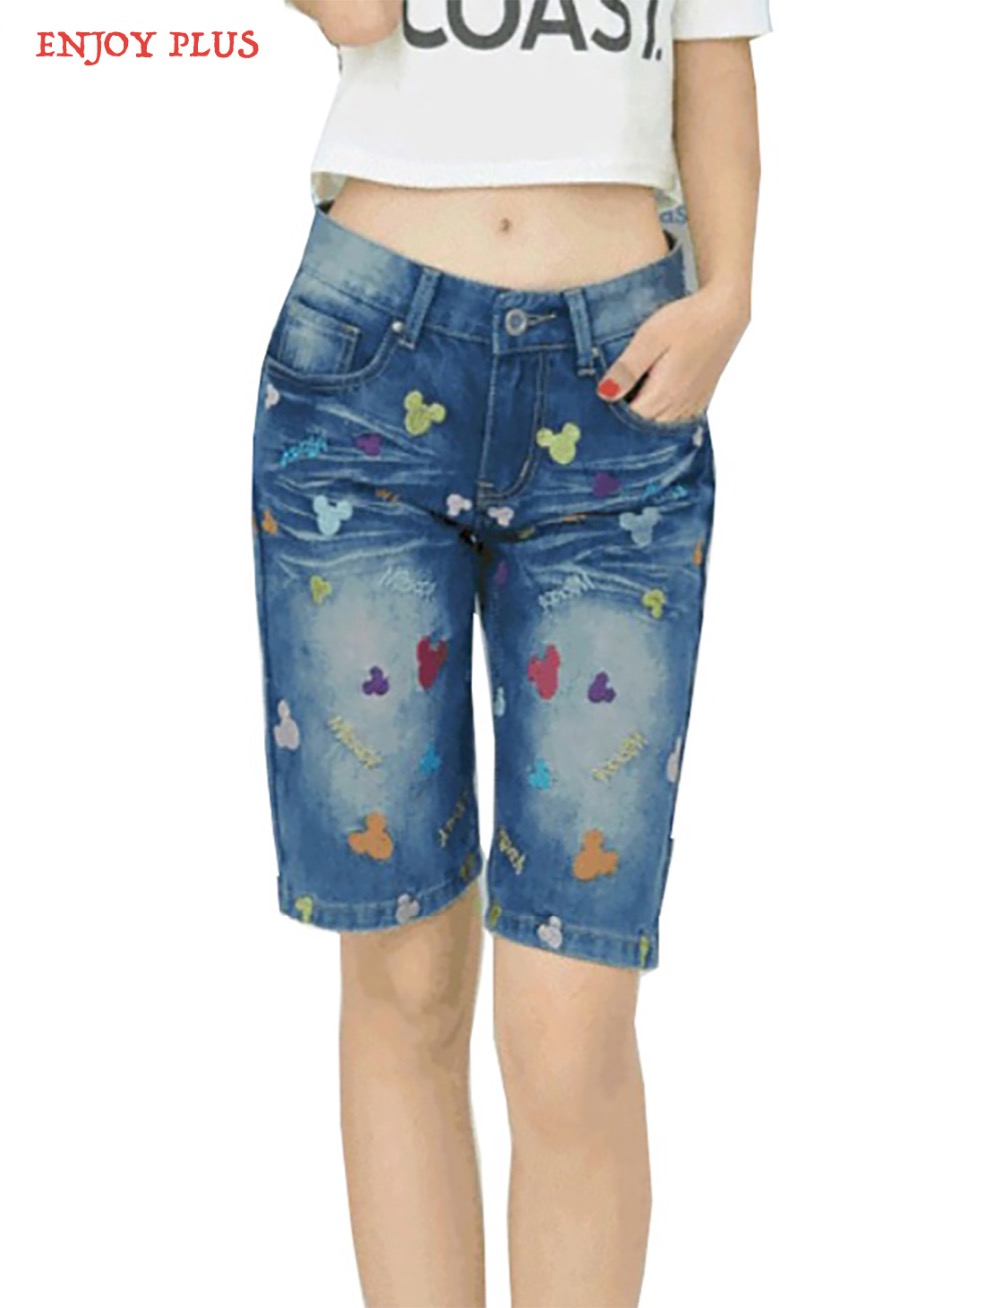 Compare Prices on 7 Jeans Sizing- Online Shopping/Buy Low Price 7 ...